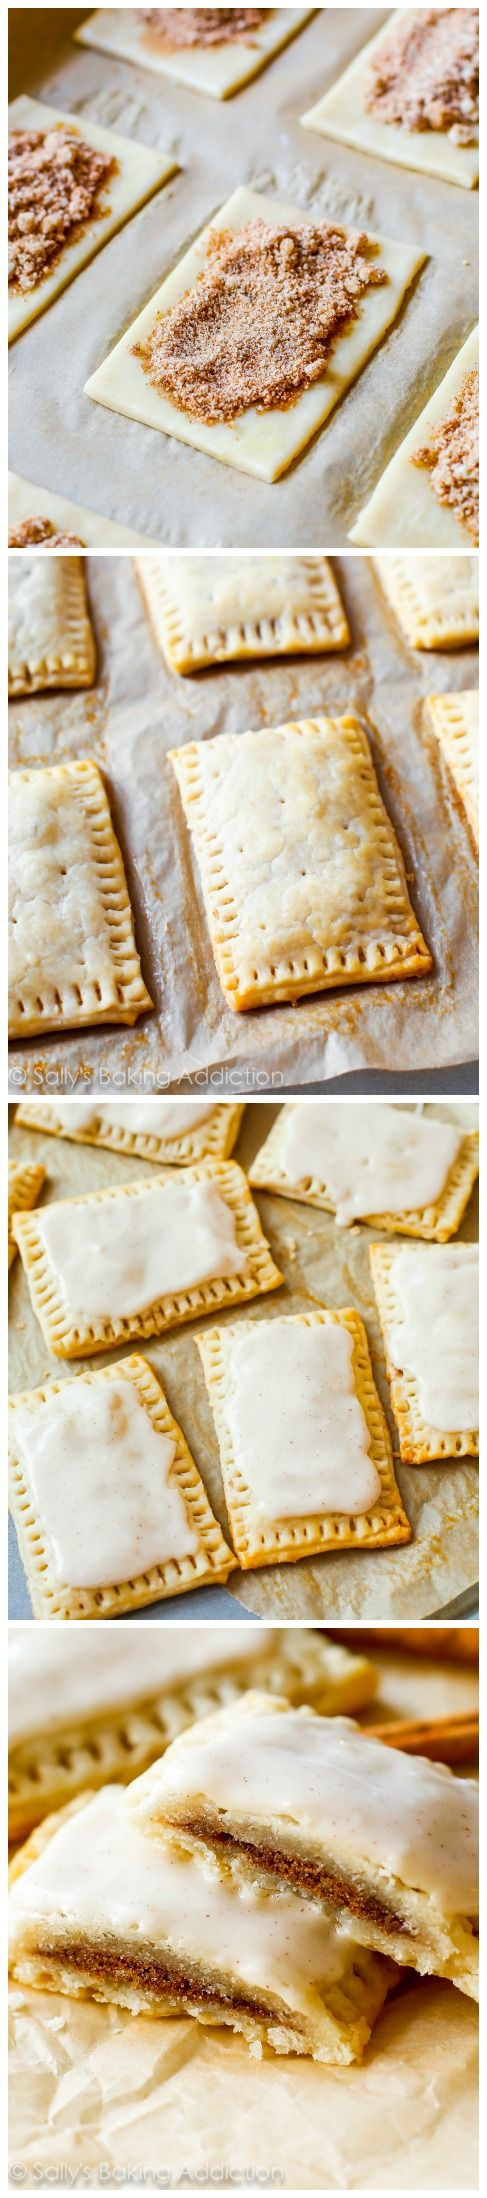 """Homemade Brown Sugar Cinnamon Pop-Tarts. None of the processed junk, 100% from scratch. The frosting """"sets"""" after an hour making them identical to the originals."""